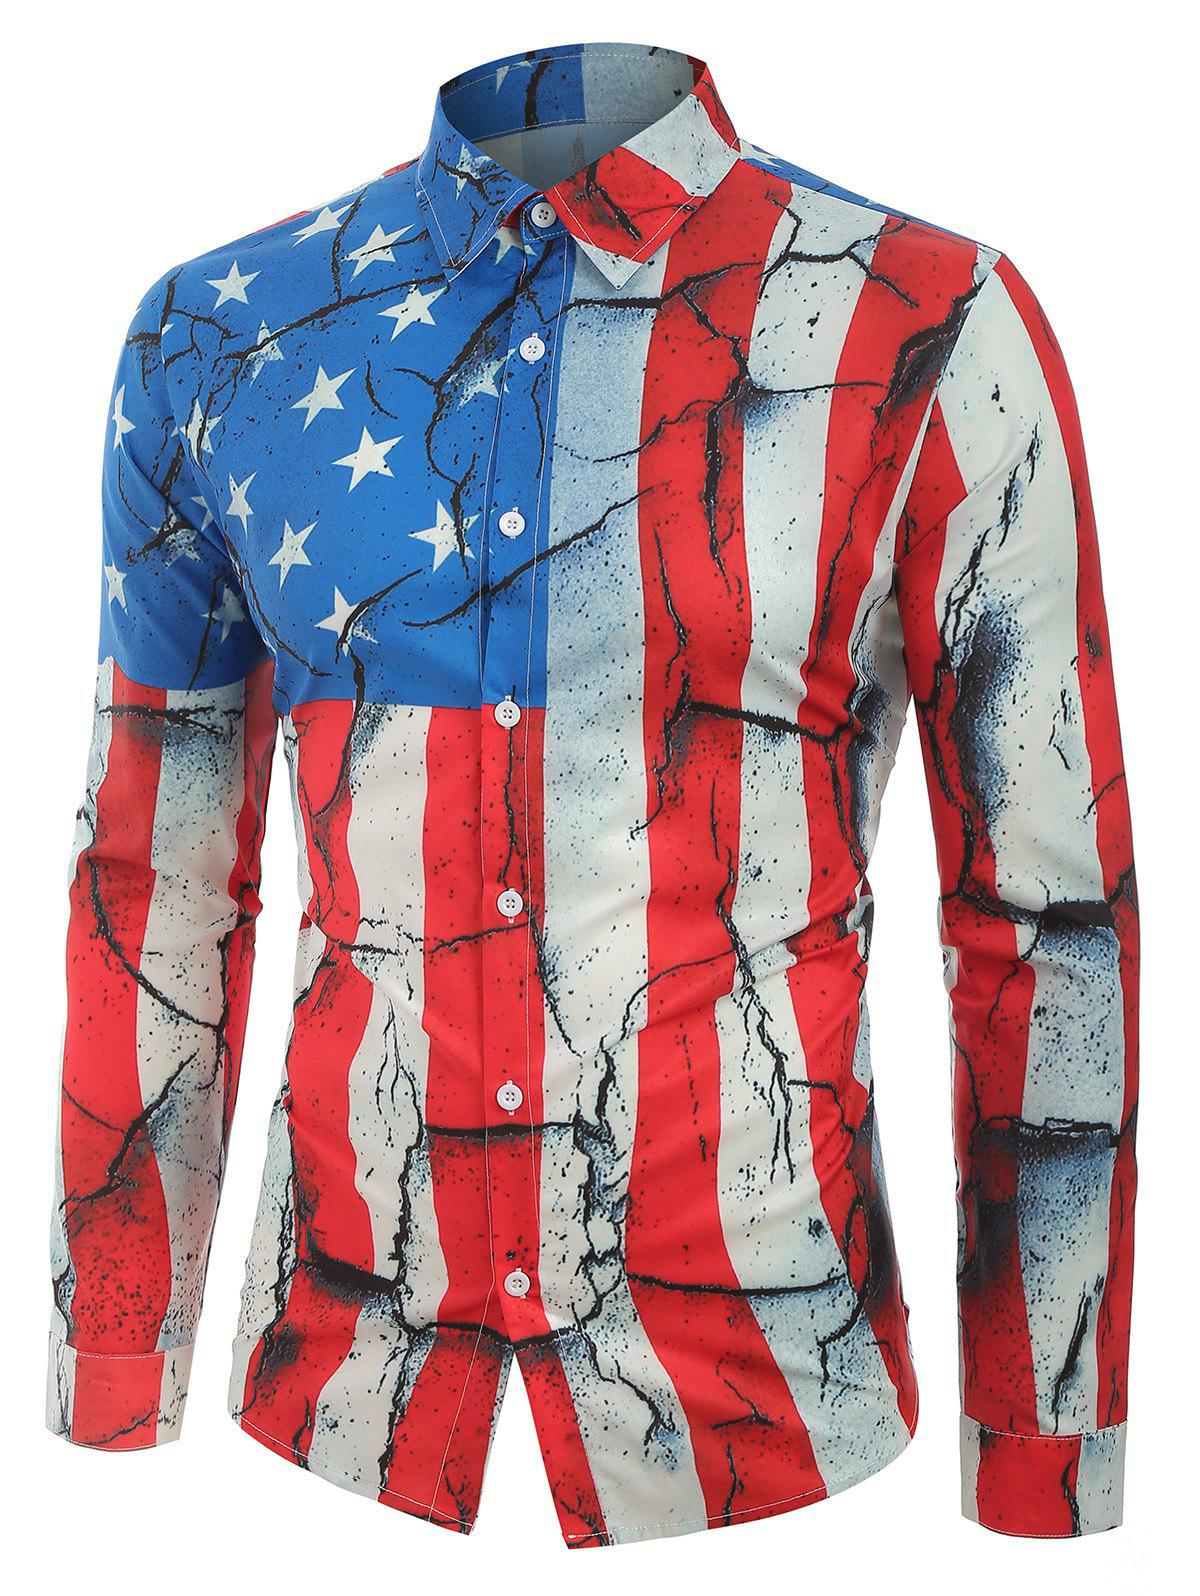 Cracked Patriotic American Flag Print Button Shirt - multicolor L